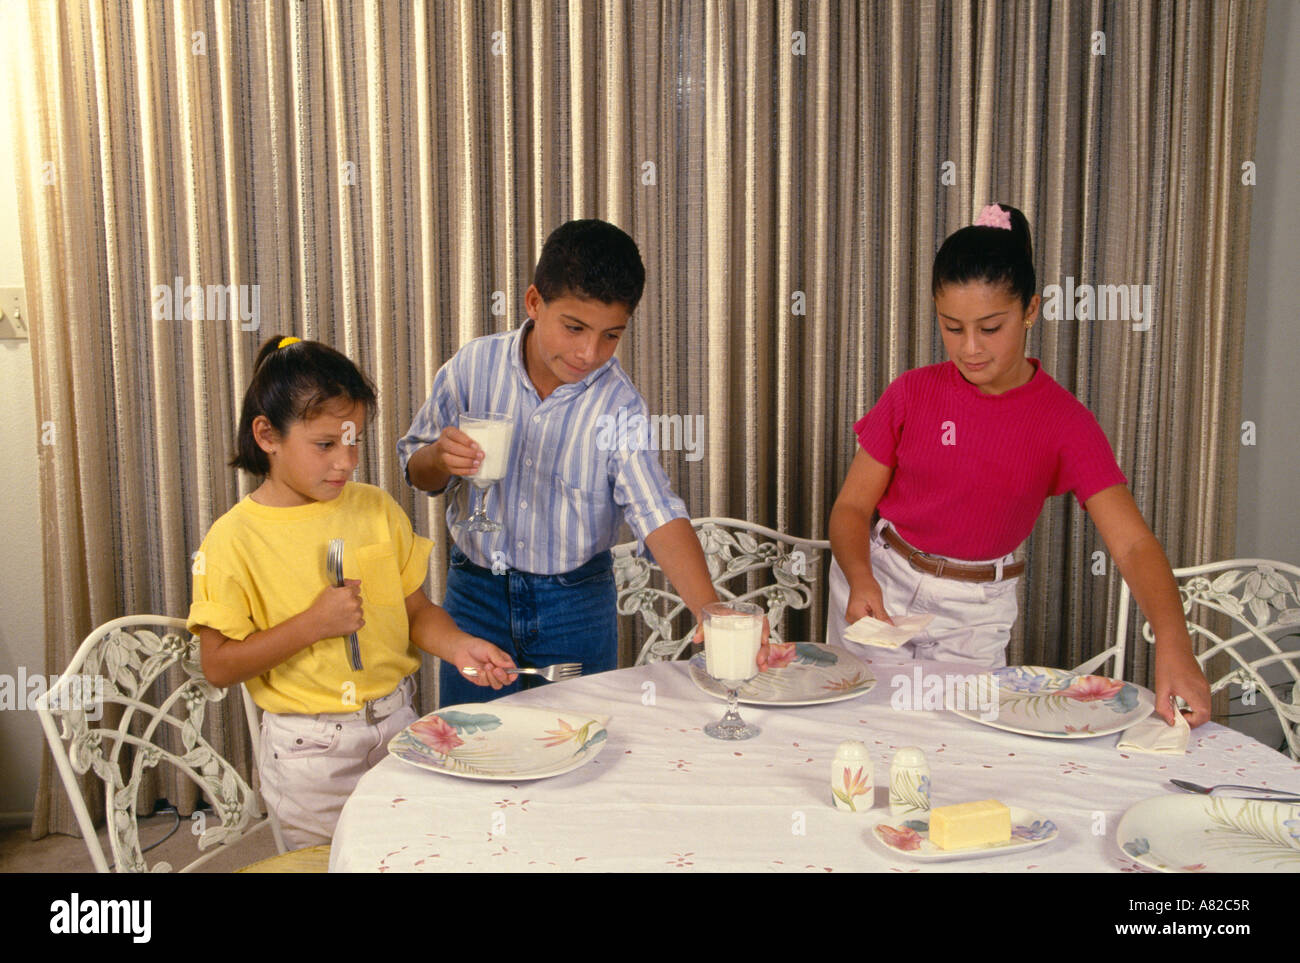 Three Hispanic Children One Brother And Two Sisters Set The Table For Family Dinner